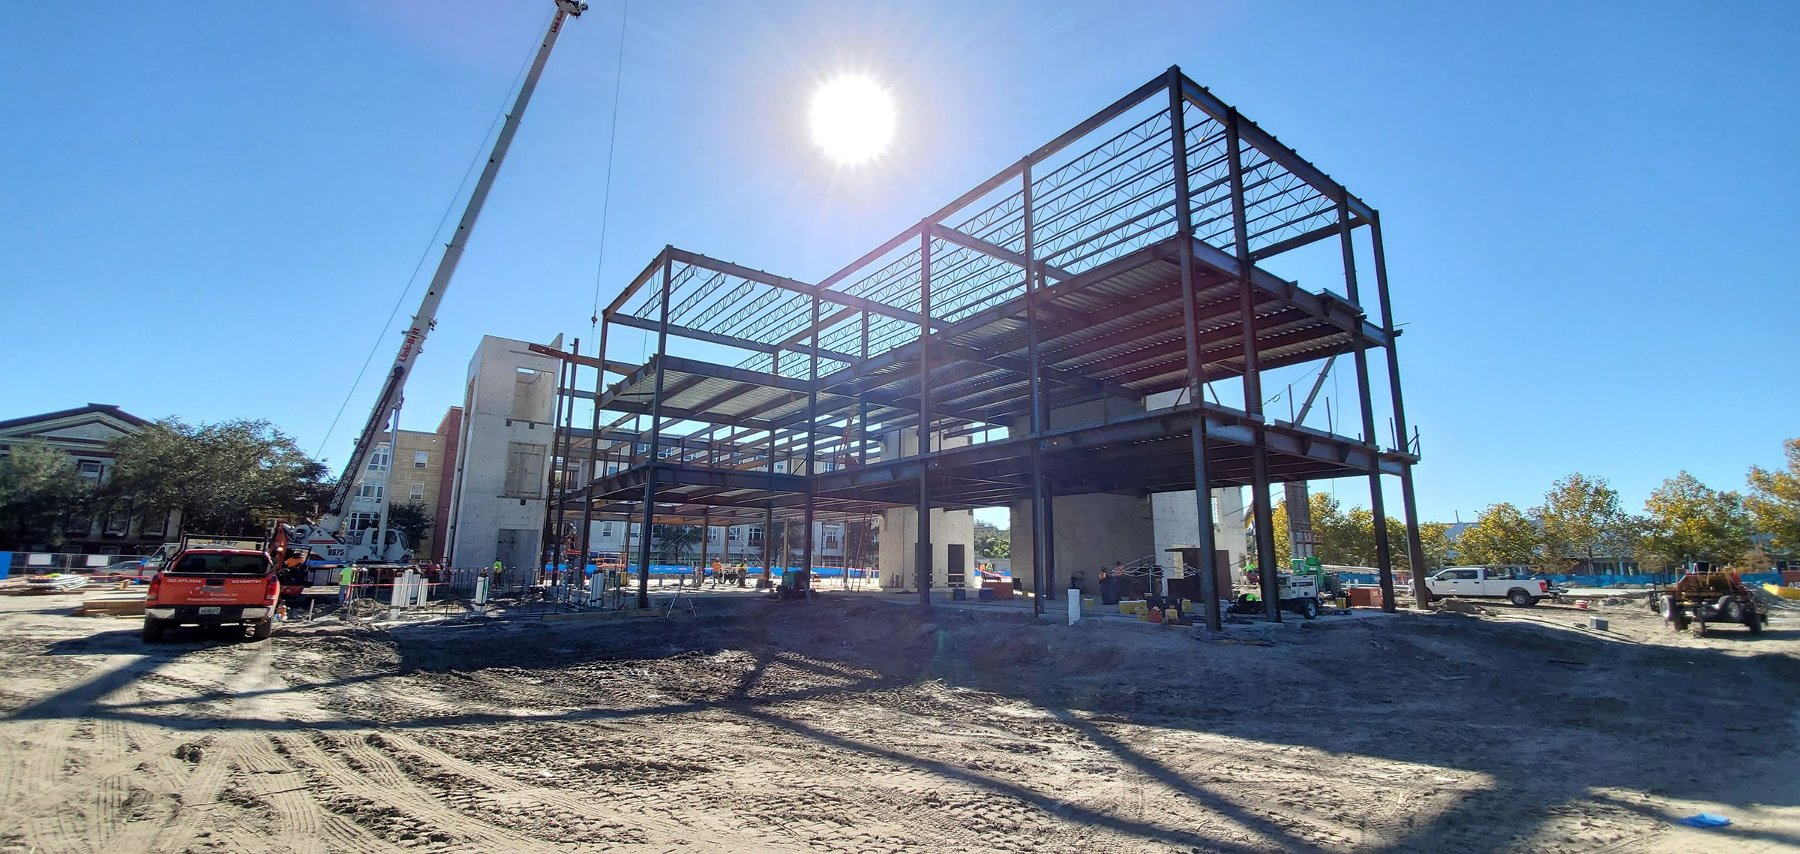 picture of steel girders going up at the new Blount Campus expansion in downtown Gainesville